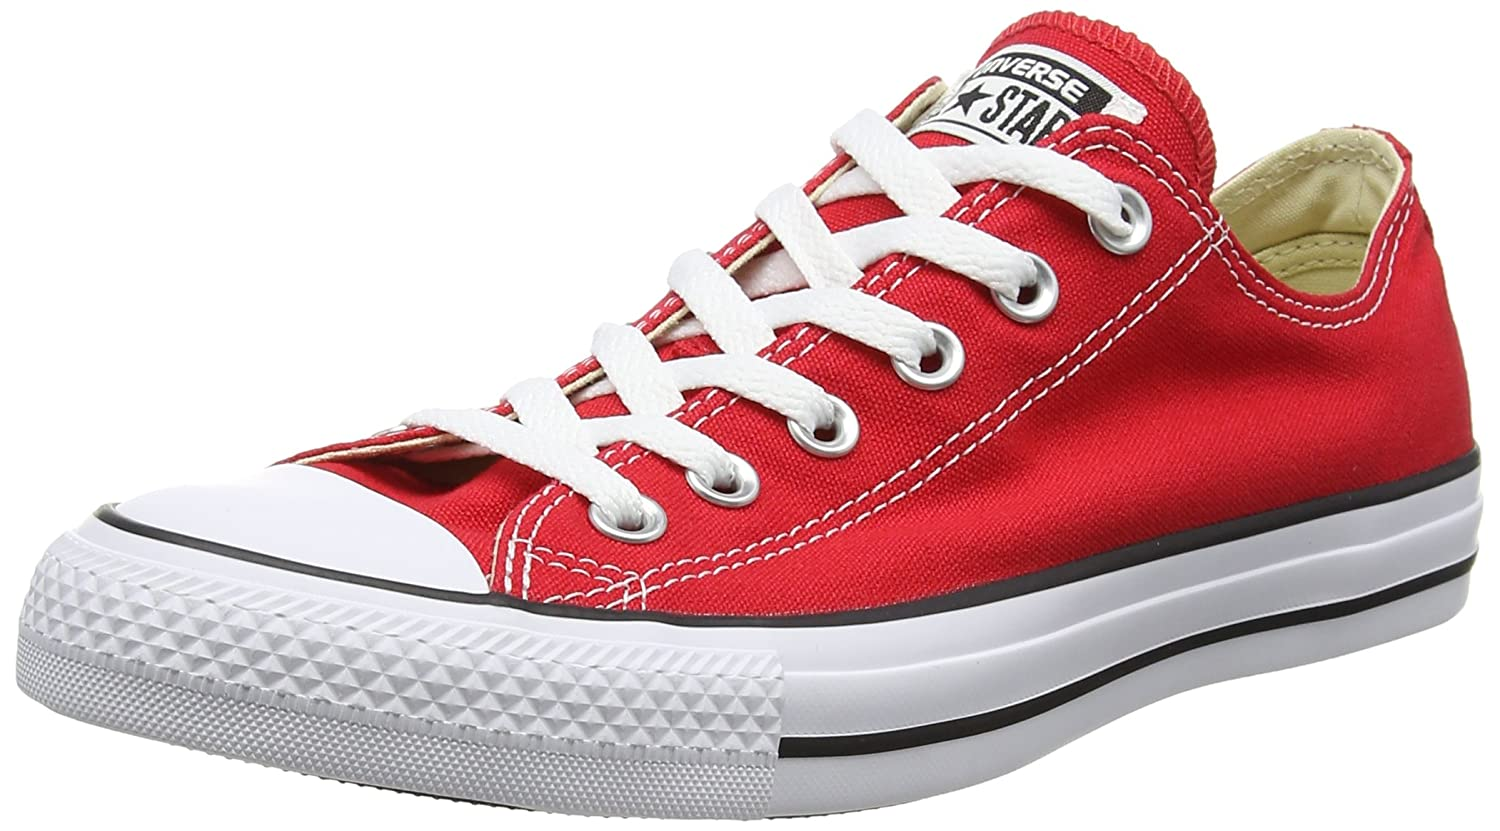 Converse Chuck Taylor All Star Canvas Low Top Sneaker B01MA18KTA 5.5 D(M)|Red